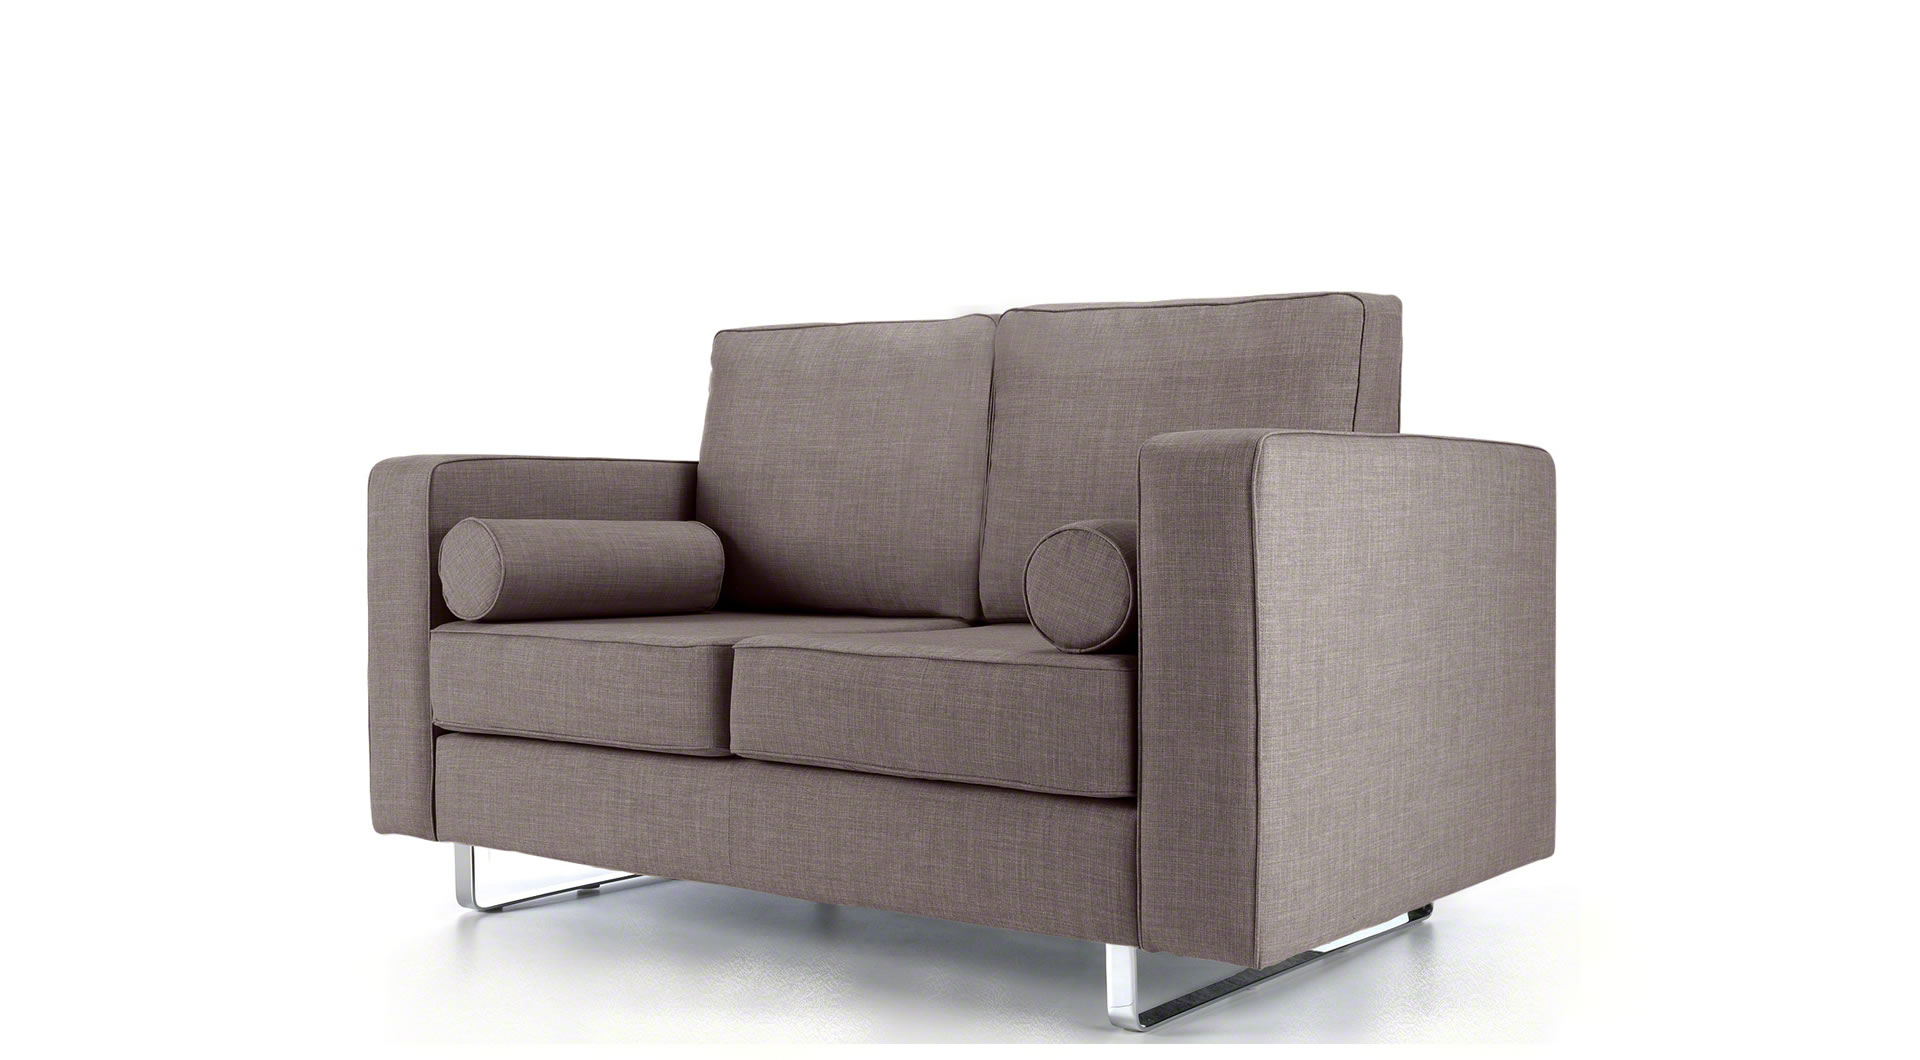 light grey sofa bed uk electric leather recliner eliza 2 seater mysmallspace